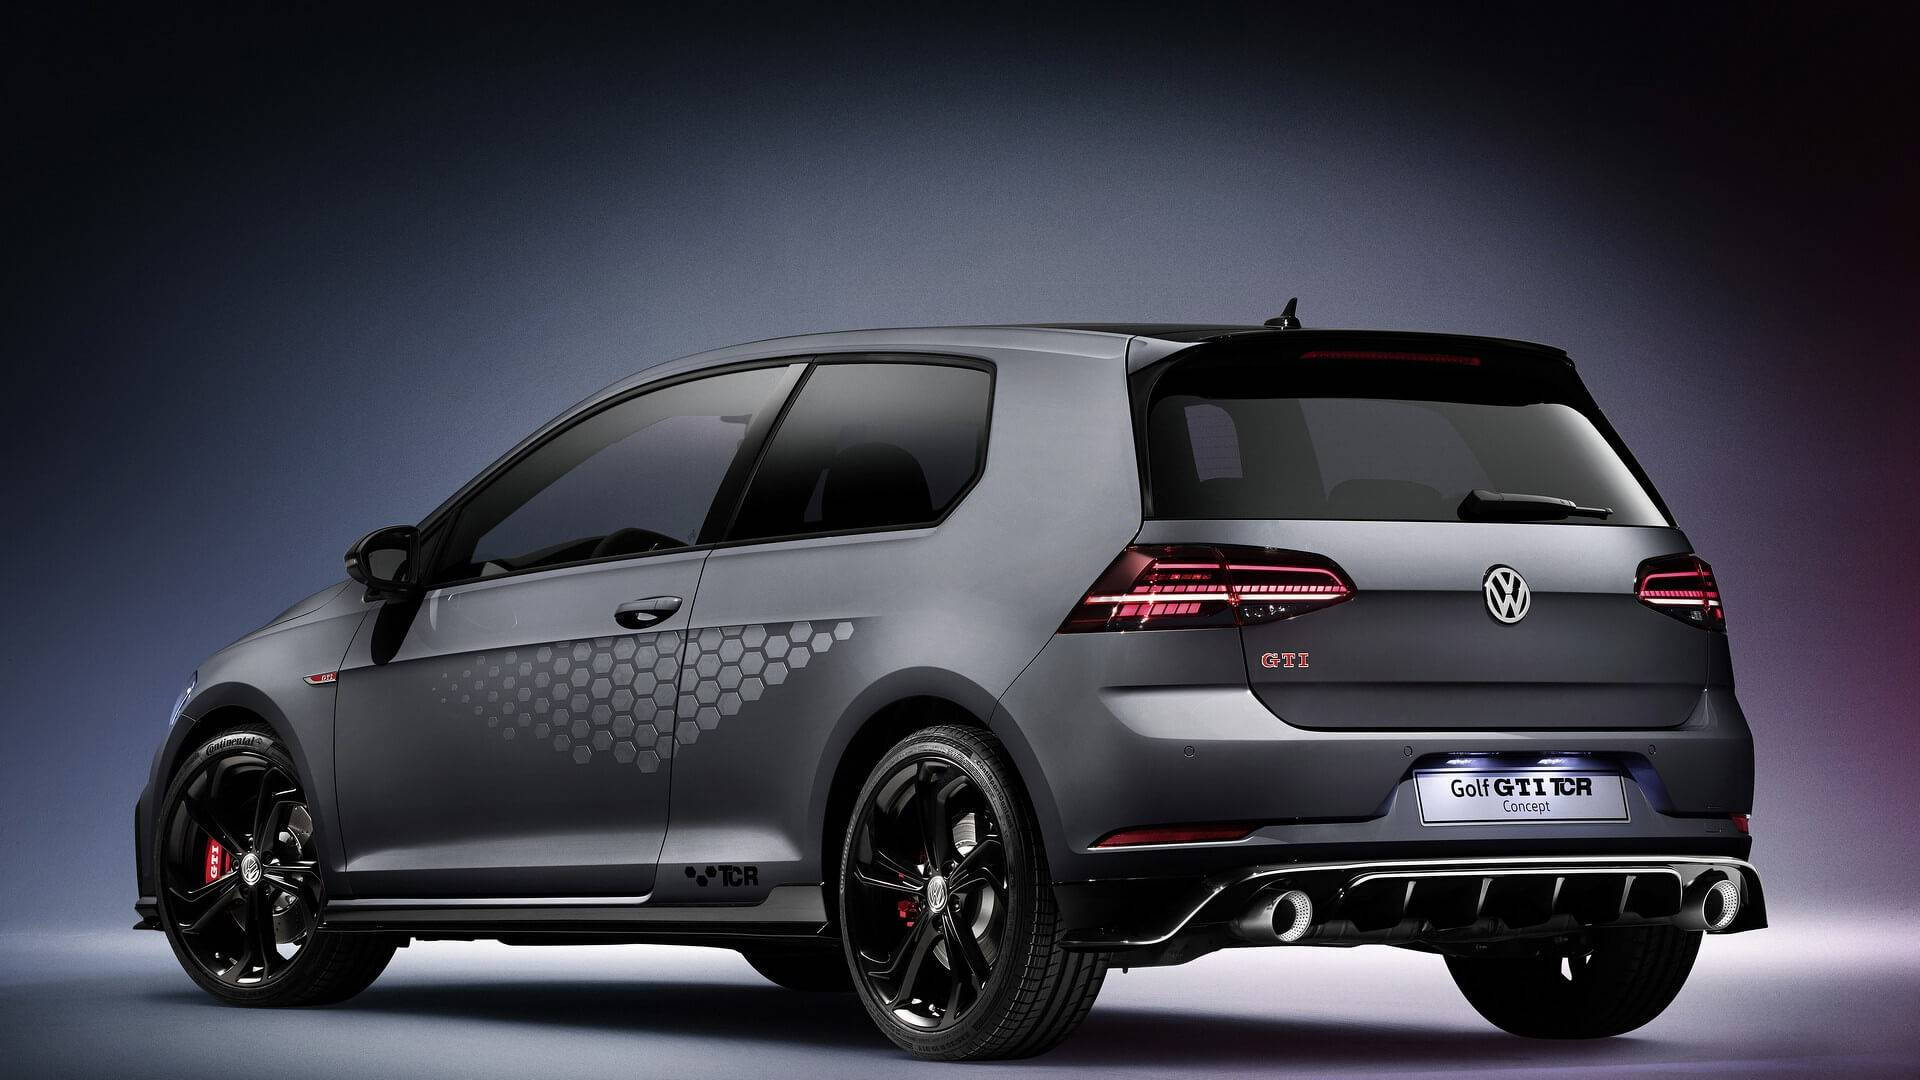 290 horsepower vw golf gti tcr road car previewed by concept. Black Bedroom Furniture Sets. Home Design Ideas